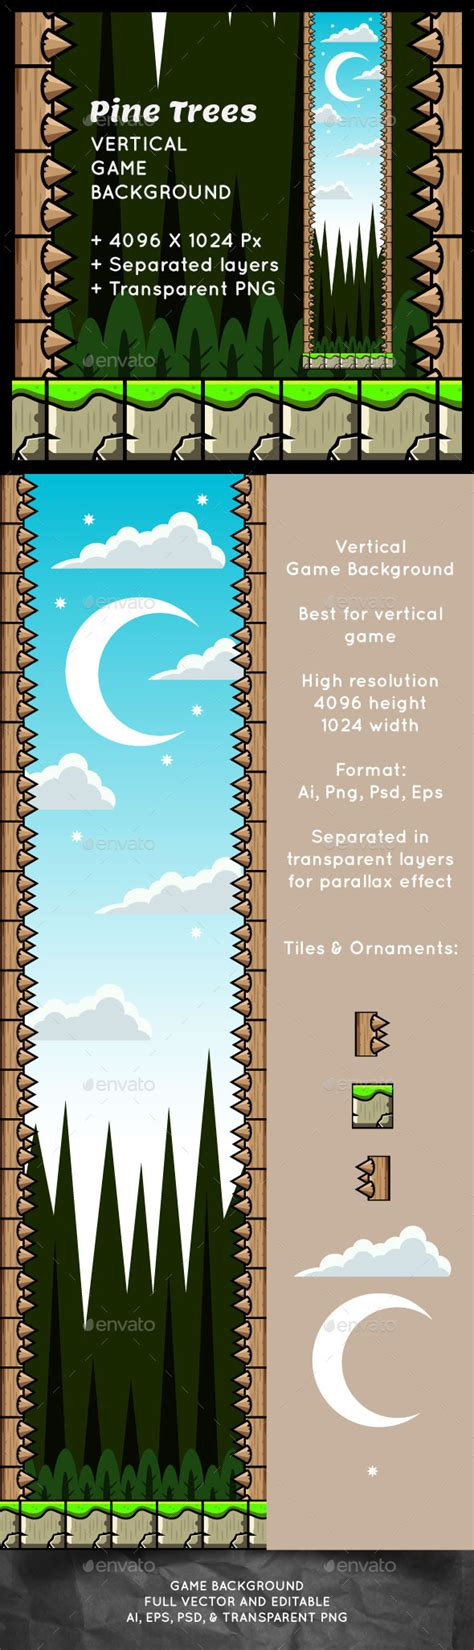 Pine Trees Vertical Game Background Graphicriver